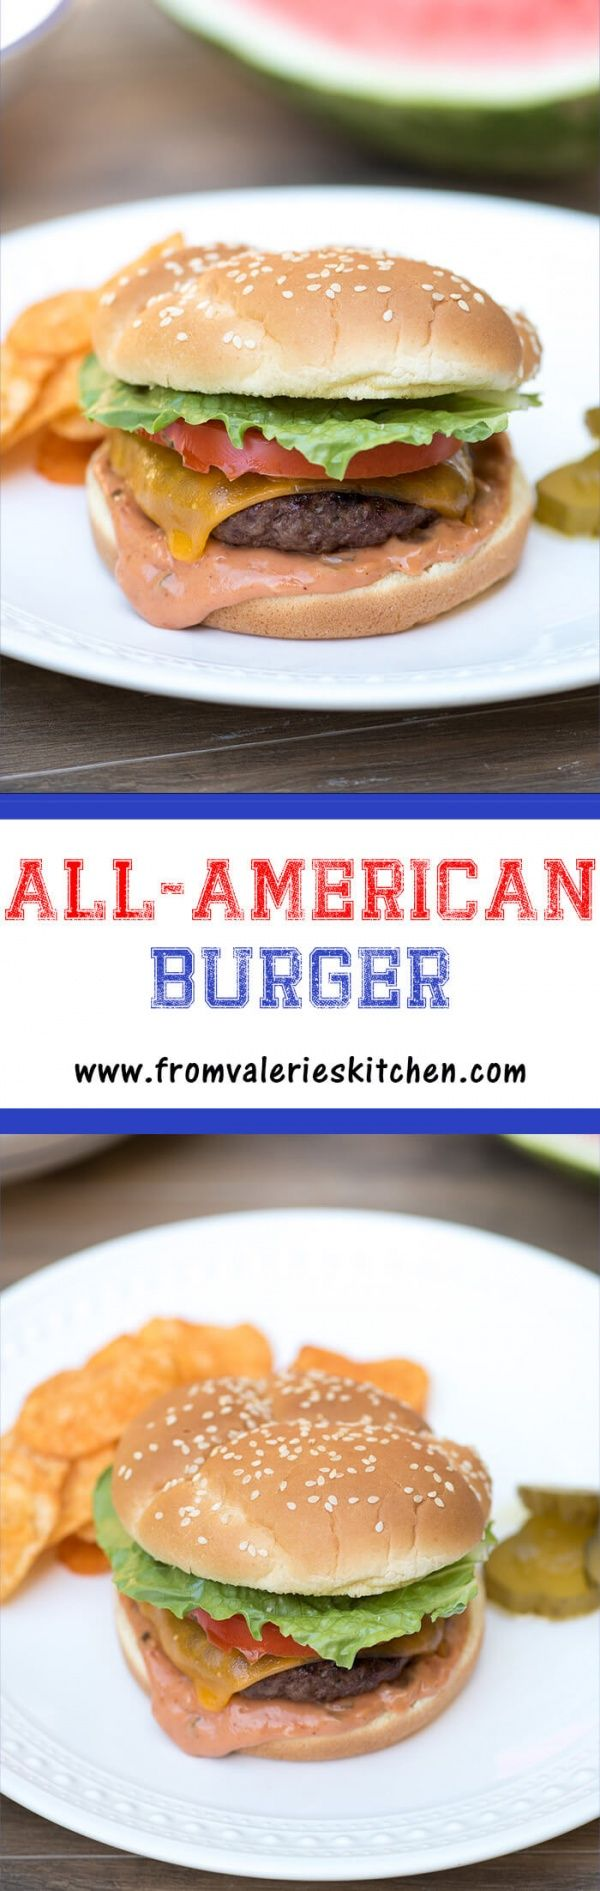 A grilled beef patty with melted sharp cheddar cheese on a toasted bun with a creamy, smoky burger sauce.The All-American Burger is a summertime classic! ~ http://www.fromvalerieskitchen.com